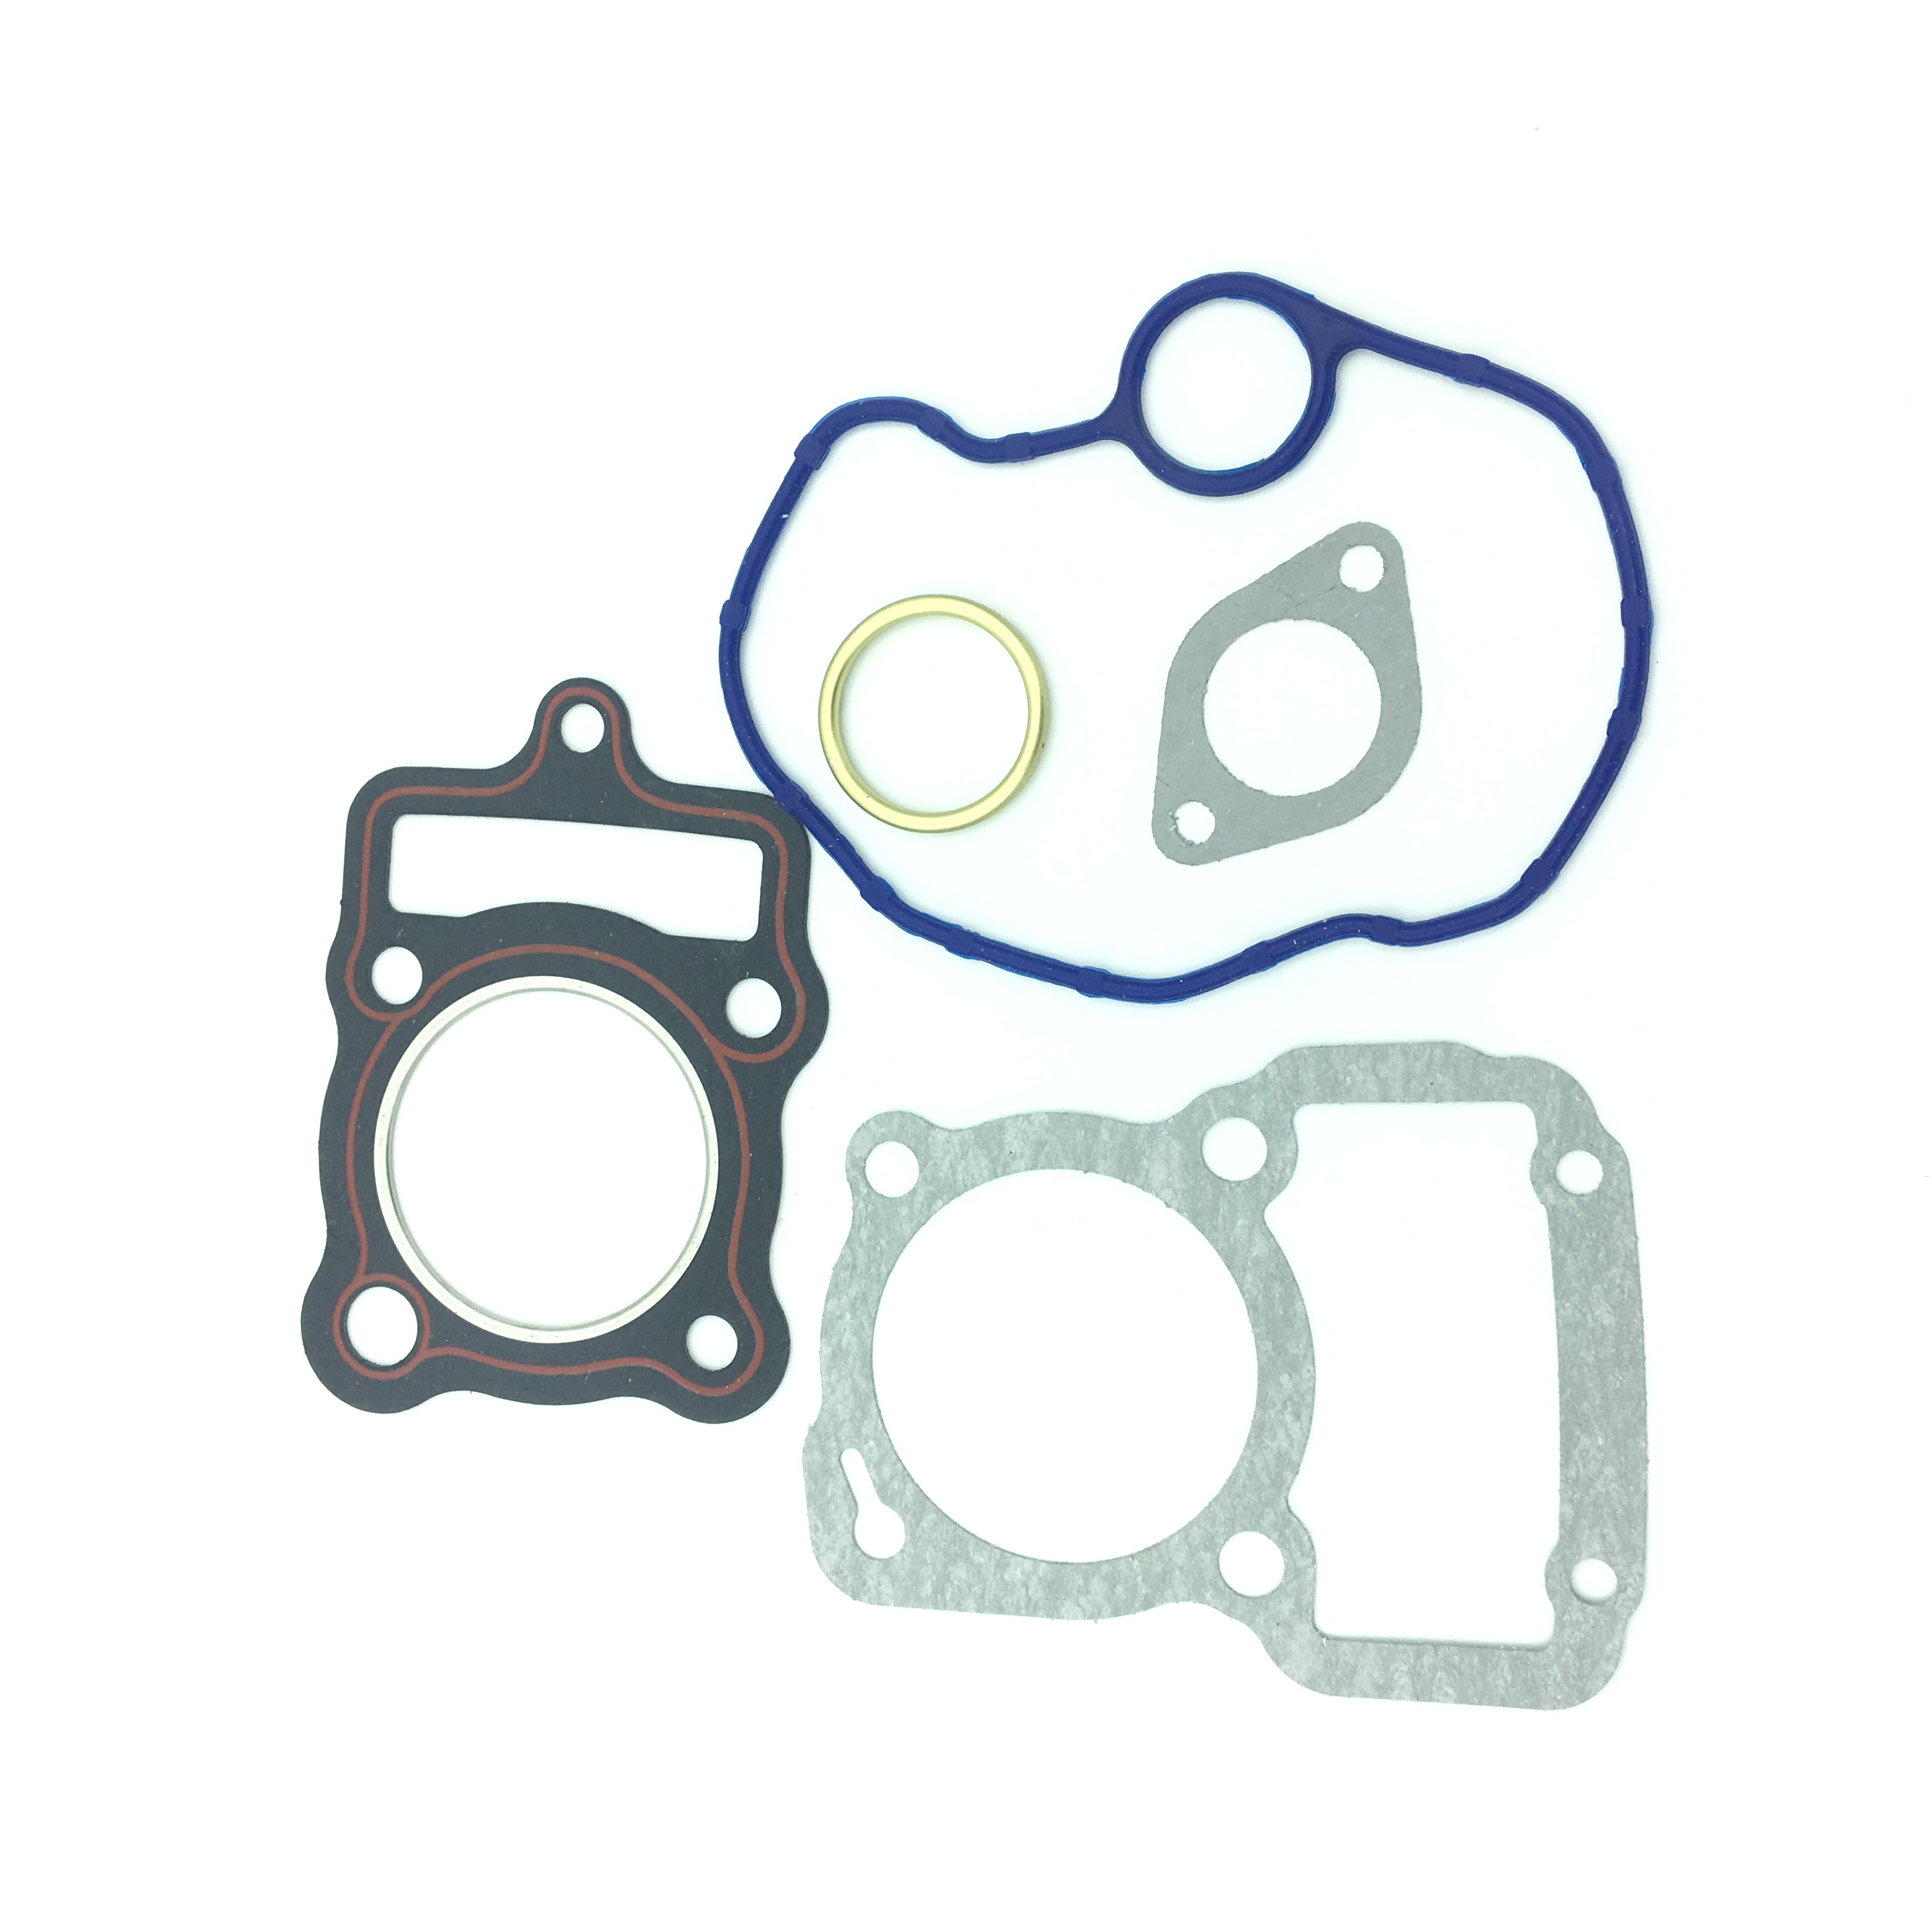 For Honda CG125 Motorcycle Cylinder Head Gasket Complete Set Kit Moped Scooter Replaces Part #12251-KY0-891 Engine Parts Accessories